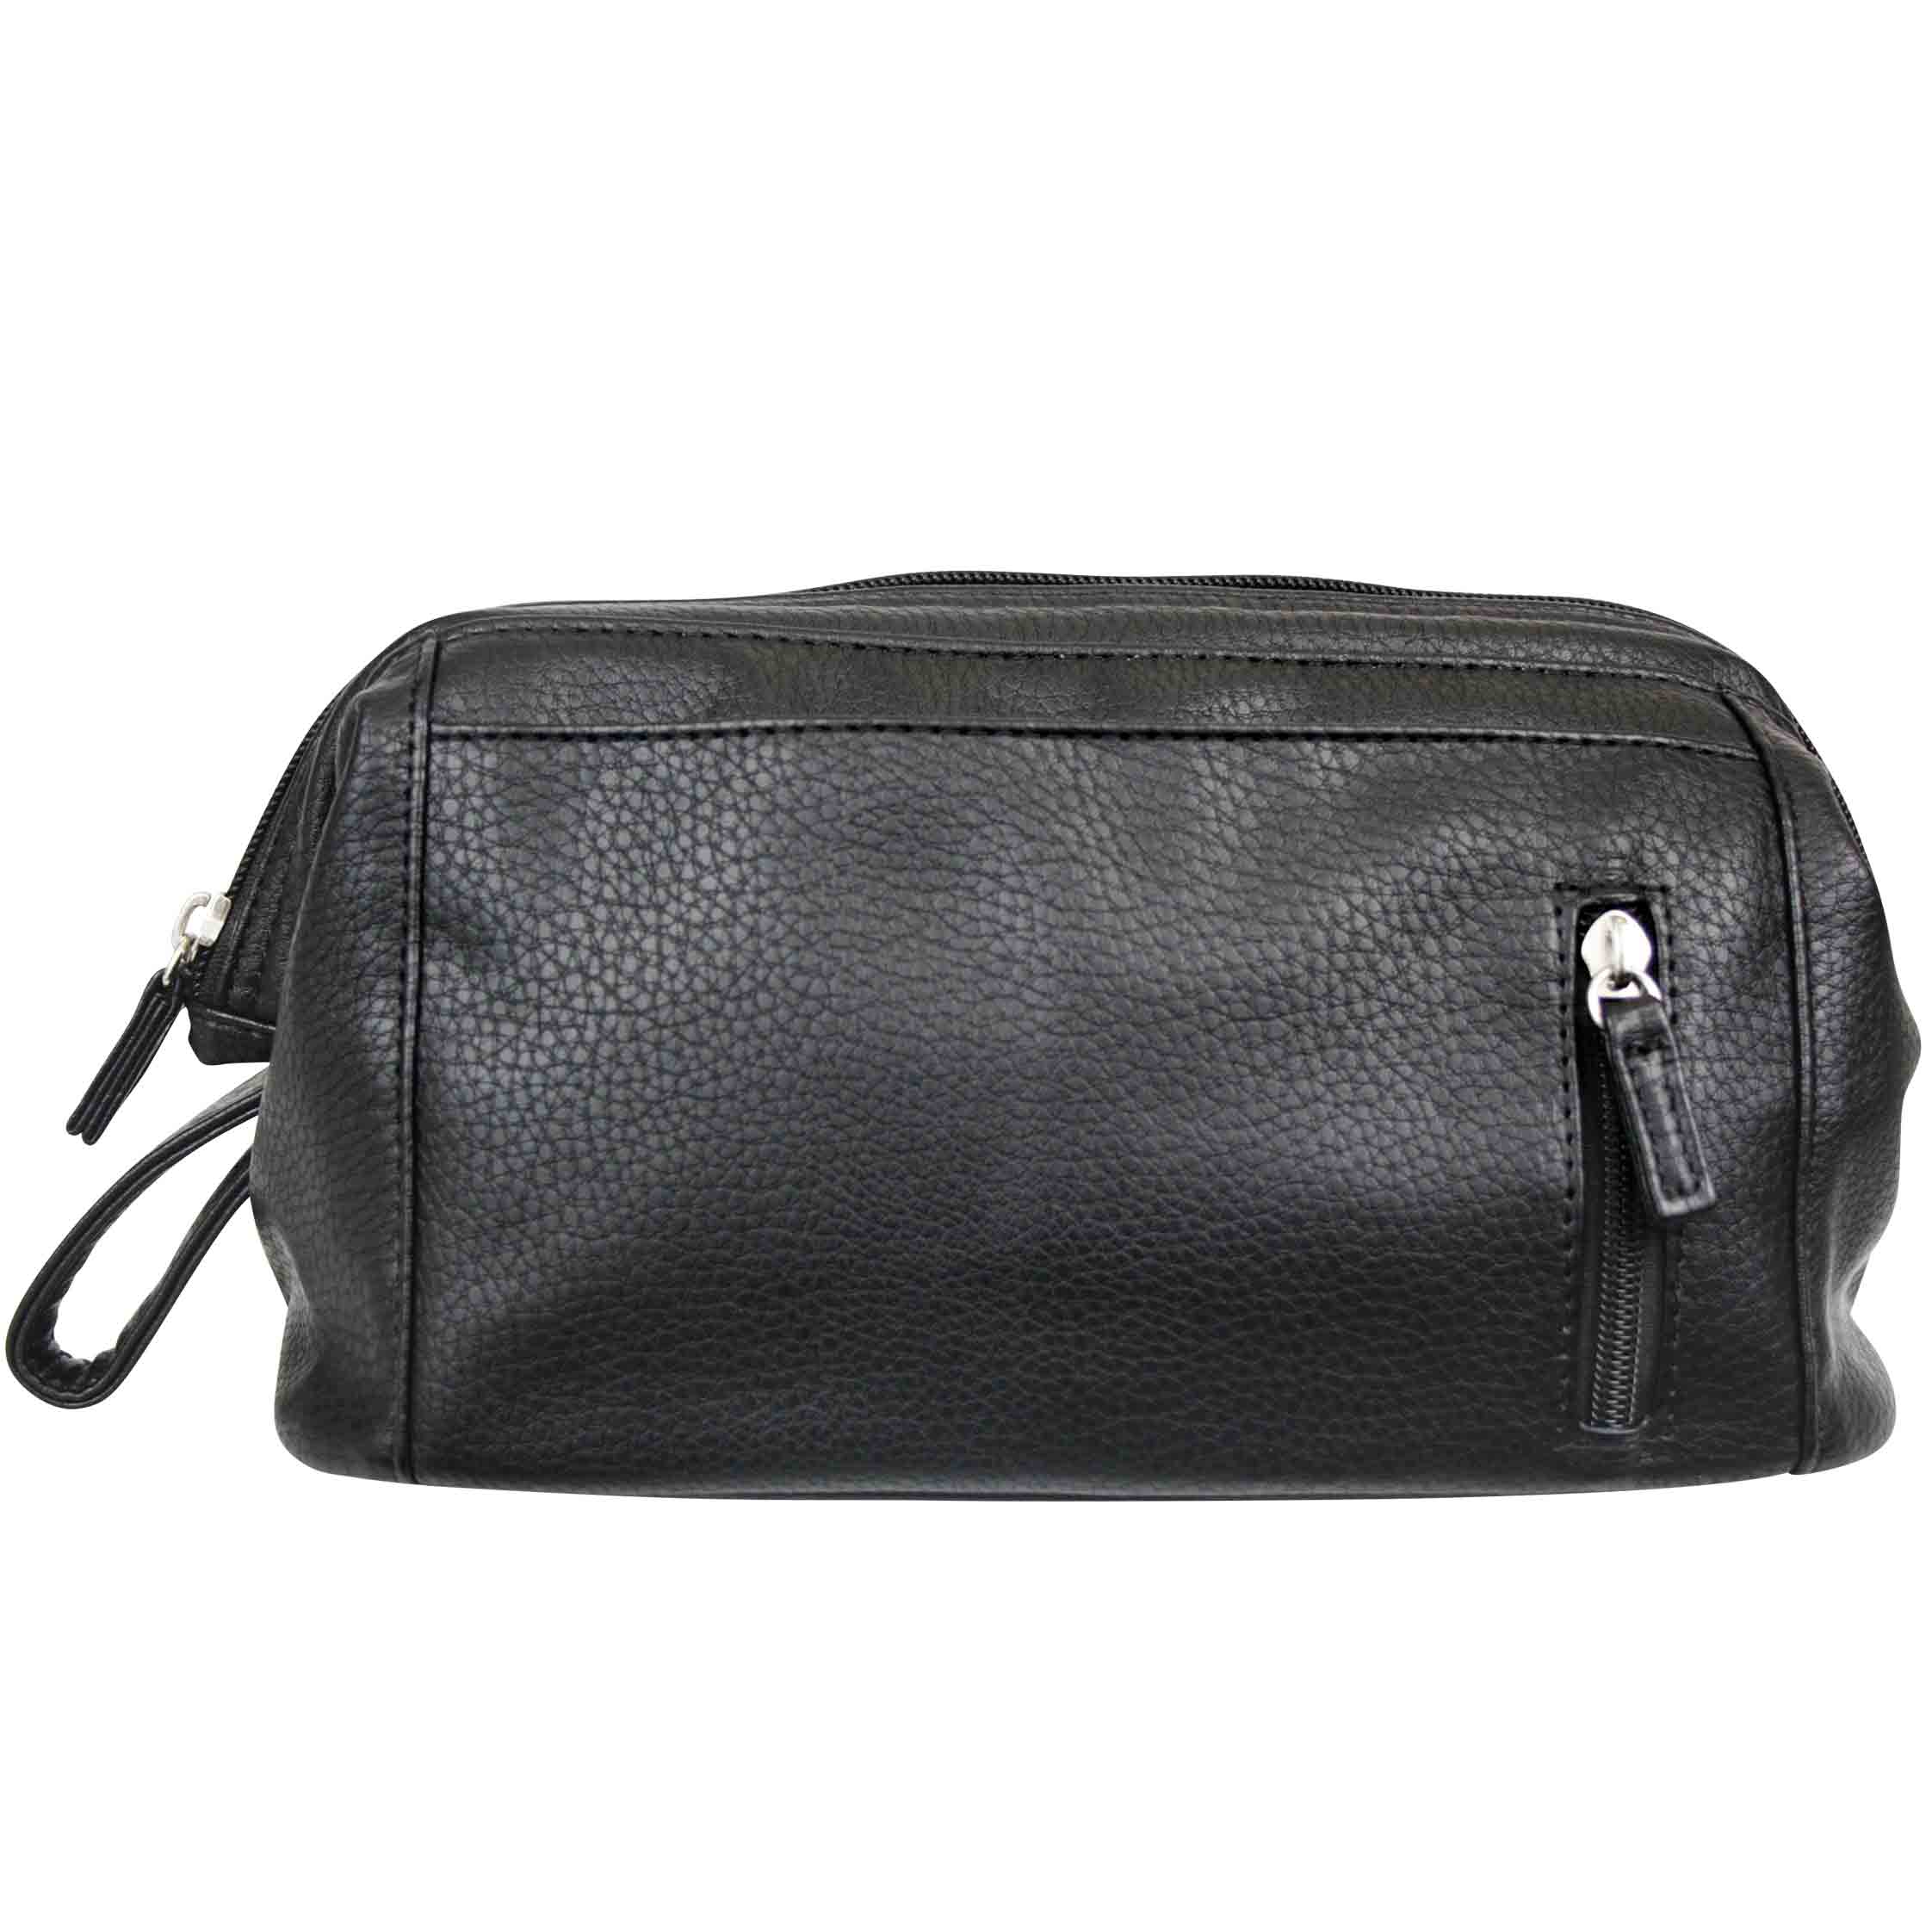 681d66b56bd5 Mister deluxe black wash bag - Wicked Sista